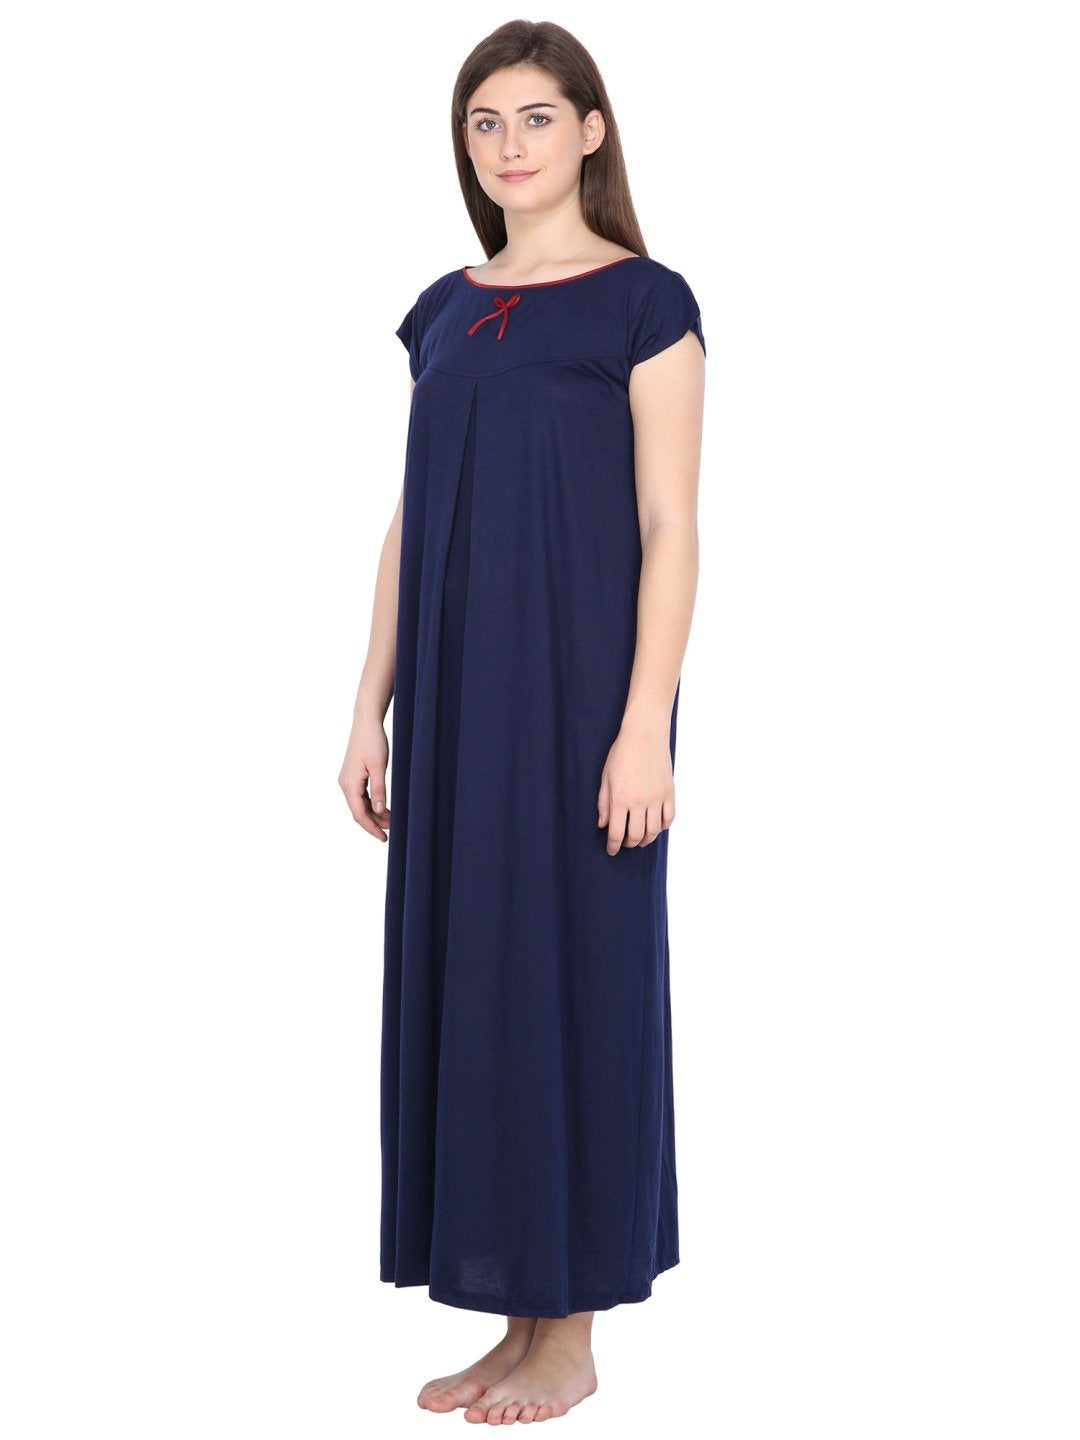 Klamotten Women's Viscose Nightdress L1N